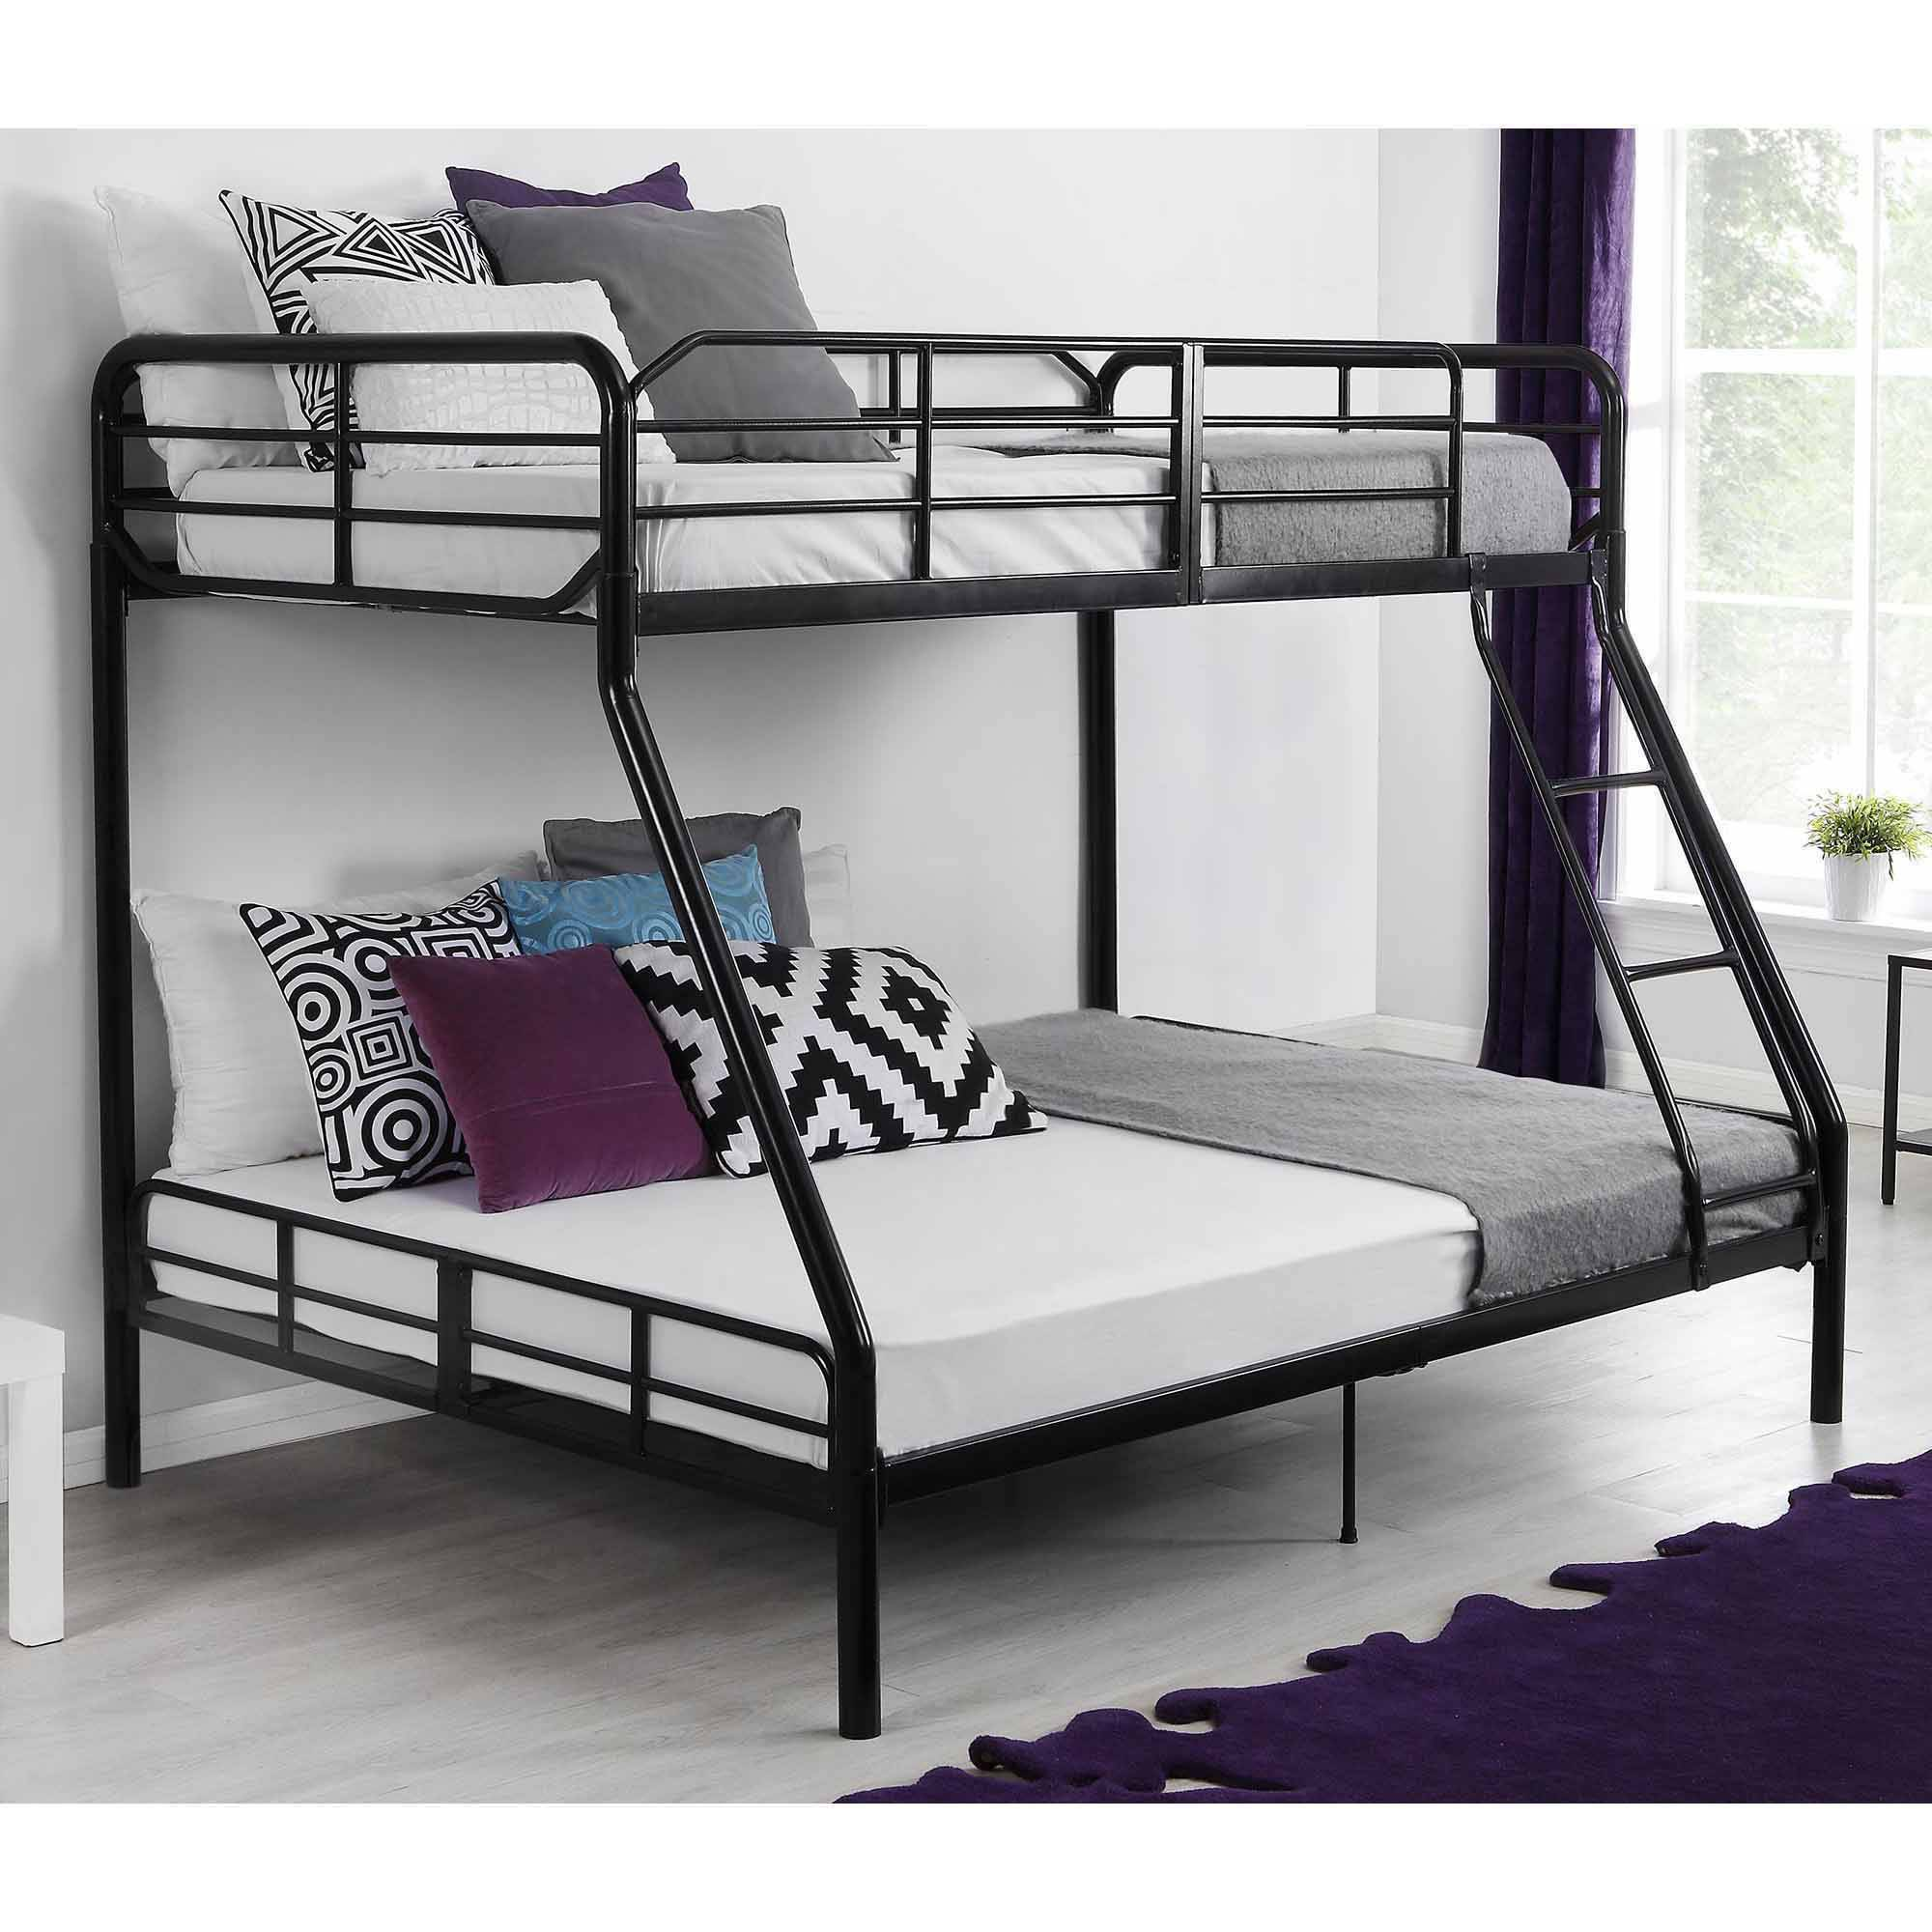 Mainstays Twin Over Full Metal Bunk Bed, Black